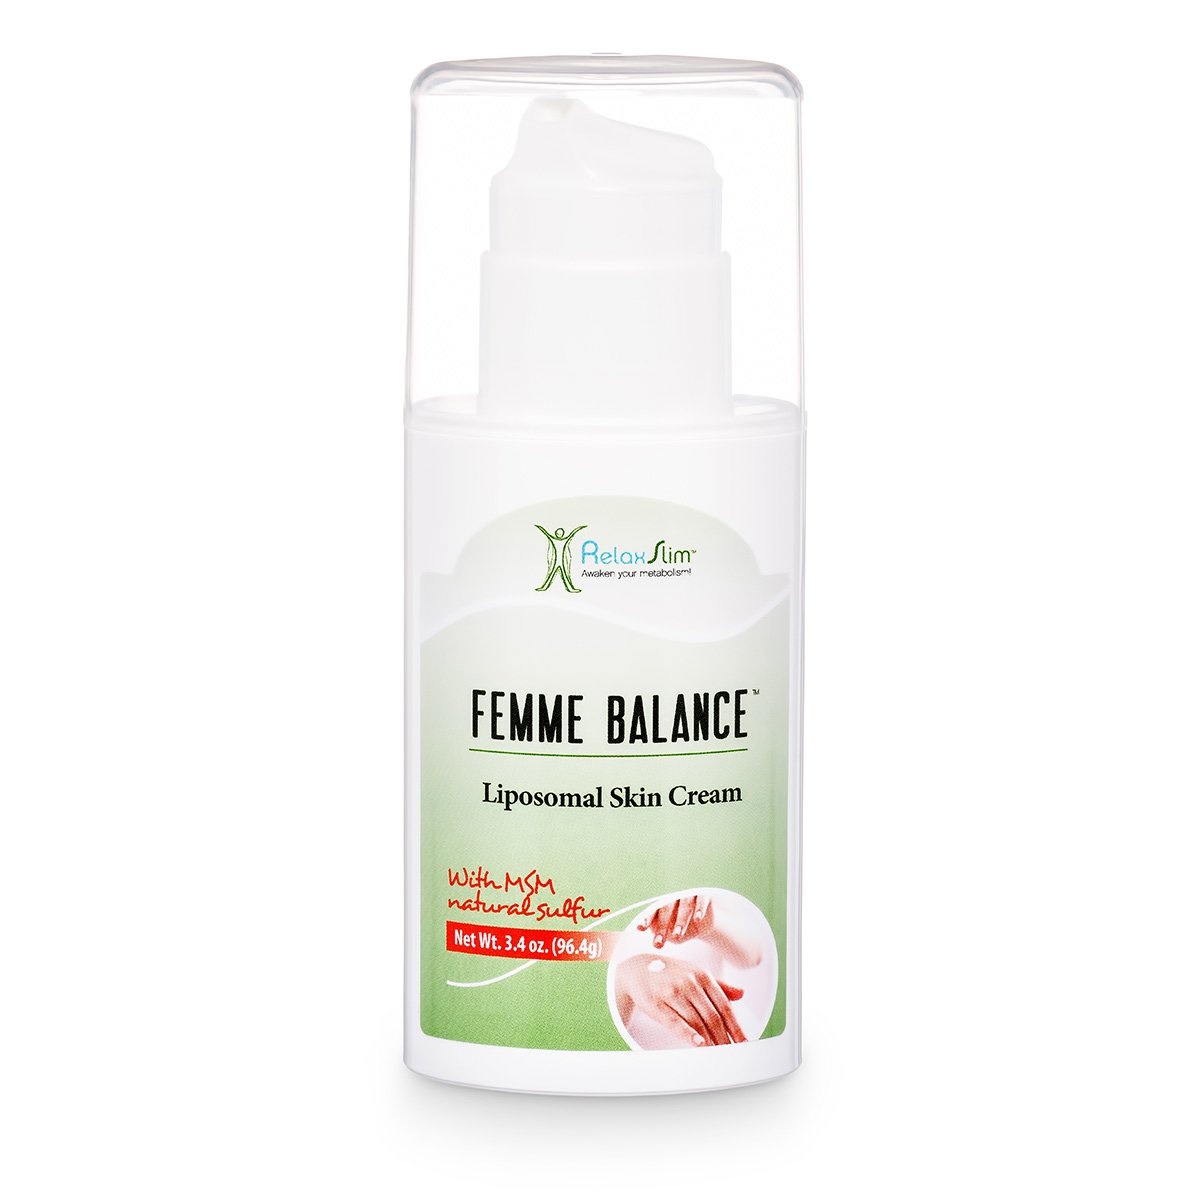 RelaxSlim Femme Balance Cream, Formulated By Metabolism And Weight Loss Specialist- Natural Help To Any Weight Loss Attempt For The Accumulation Of Fat In The Abdomen And Thigh Areas In Women